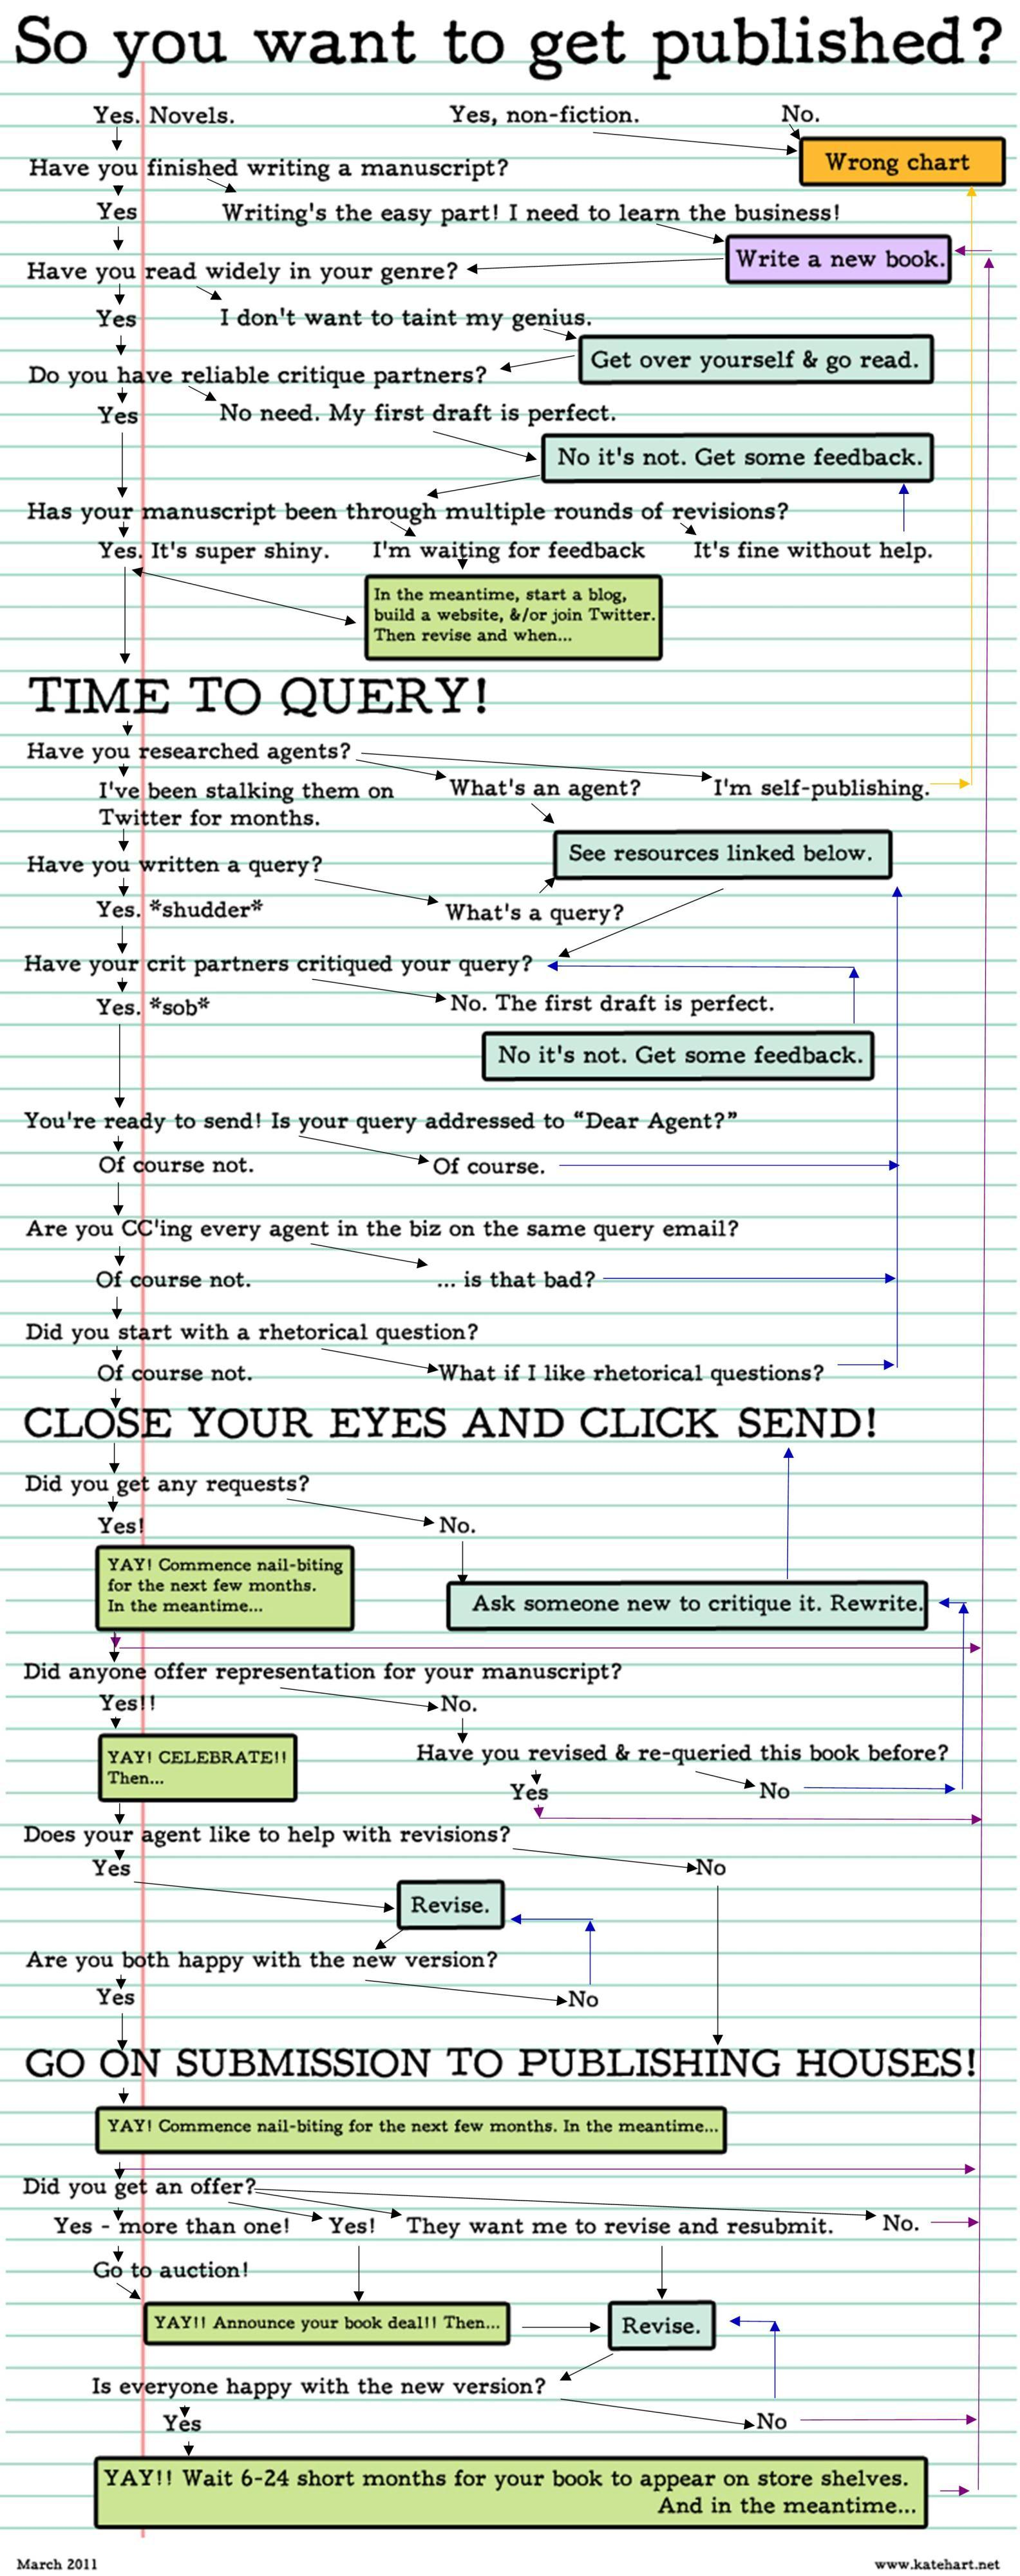 How To Get Published Infographic